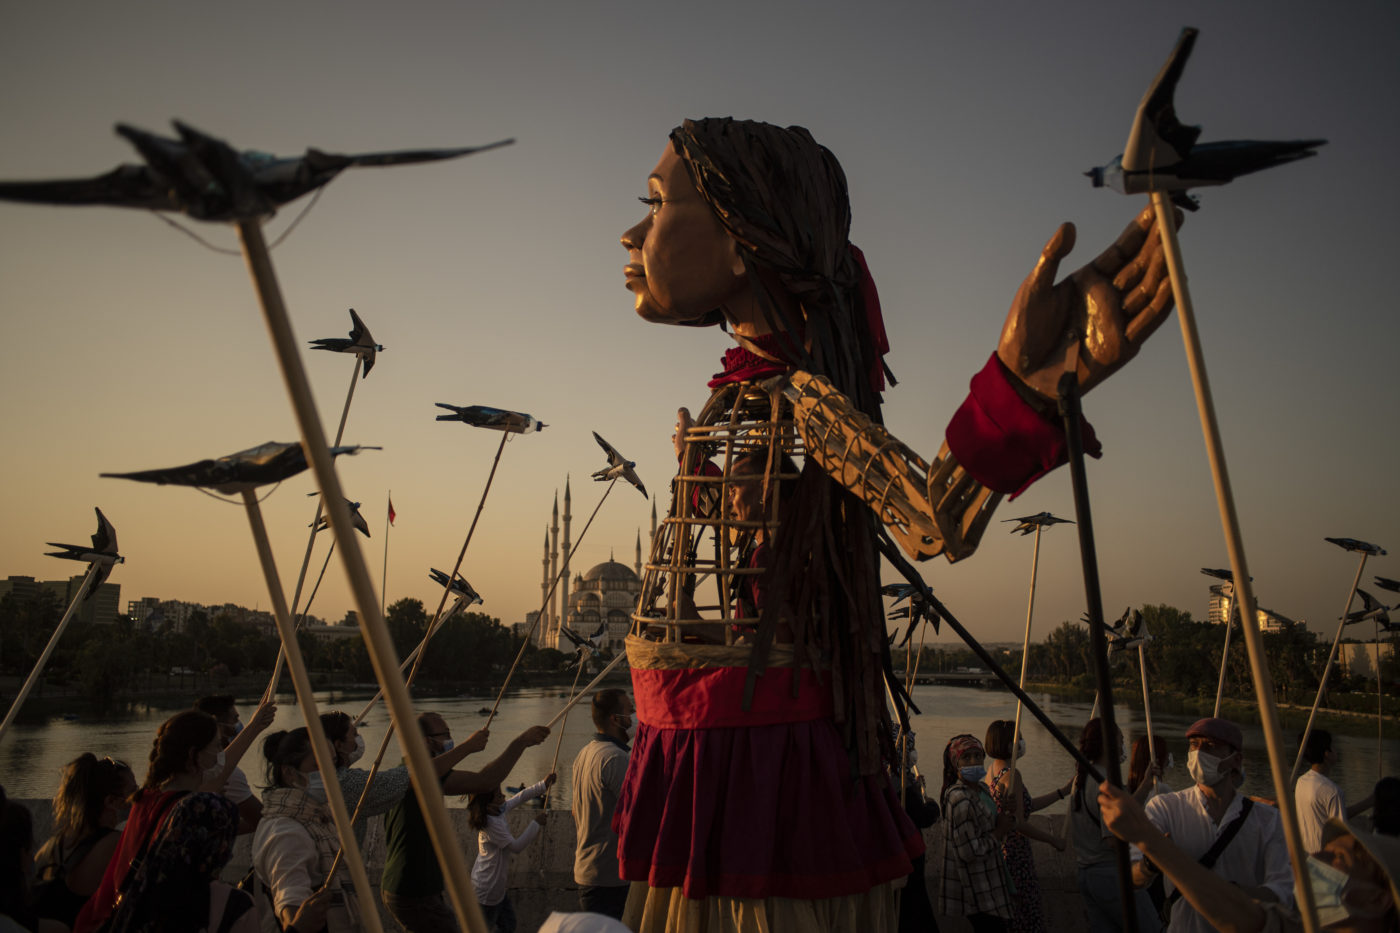 The puppet of Amal stands facing into the setting sun. She is surrounded by puppeteers holding swallow puppets on long sticks. Amal's arms are outstreched.